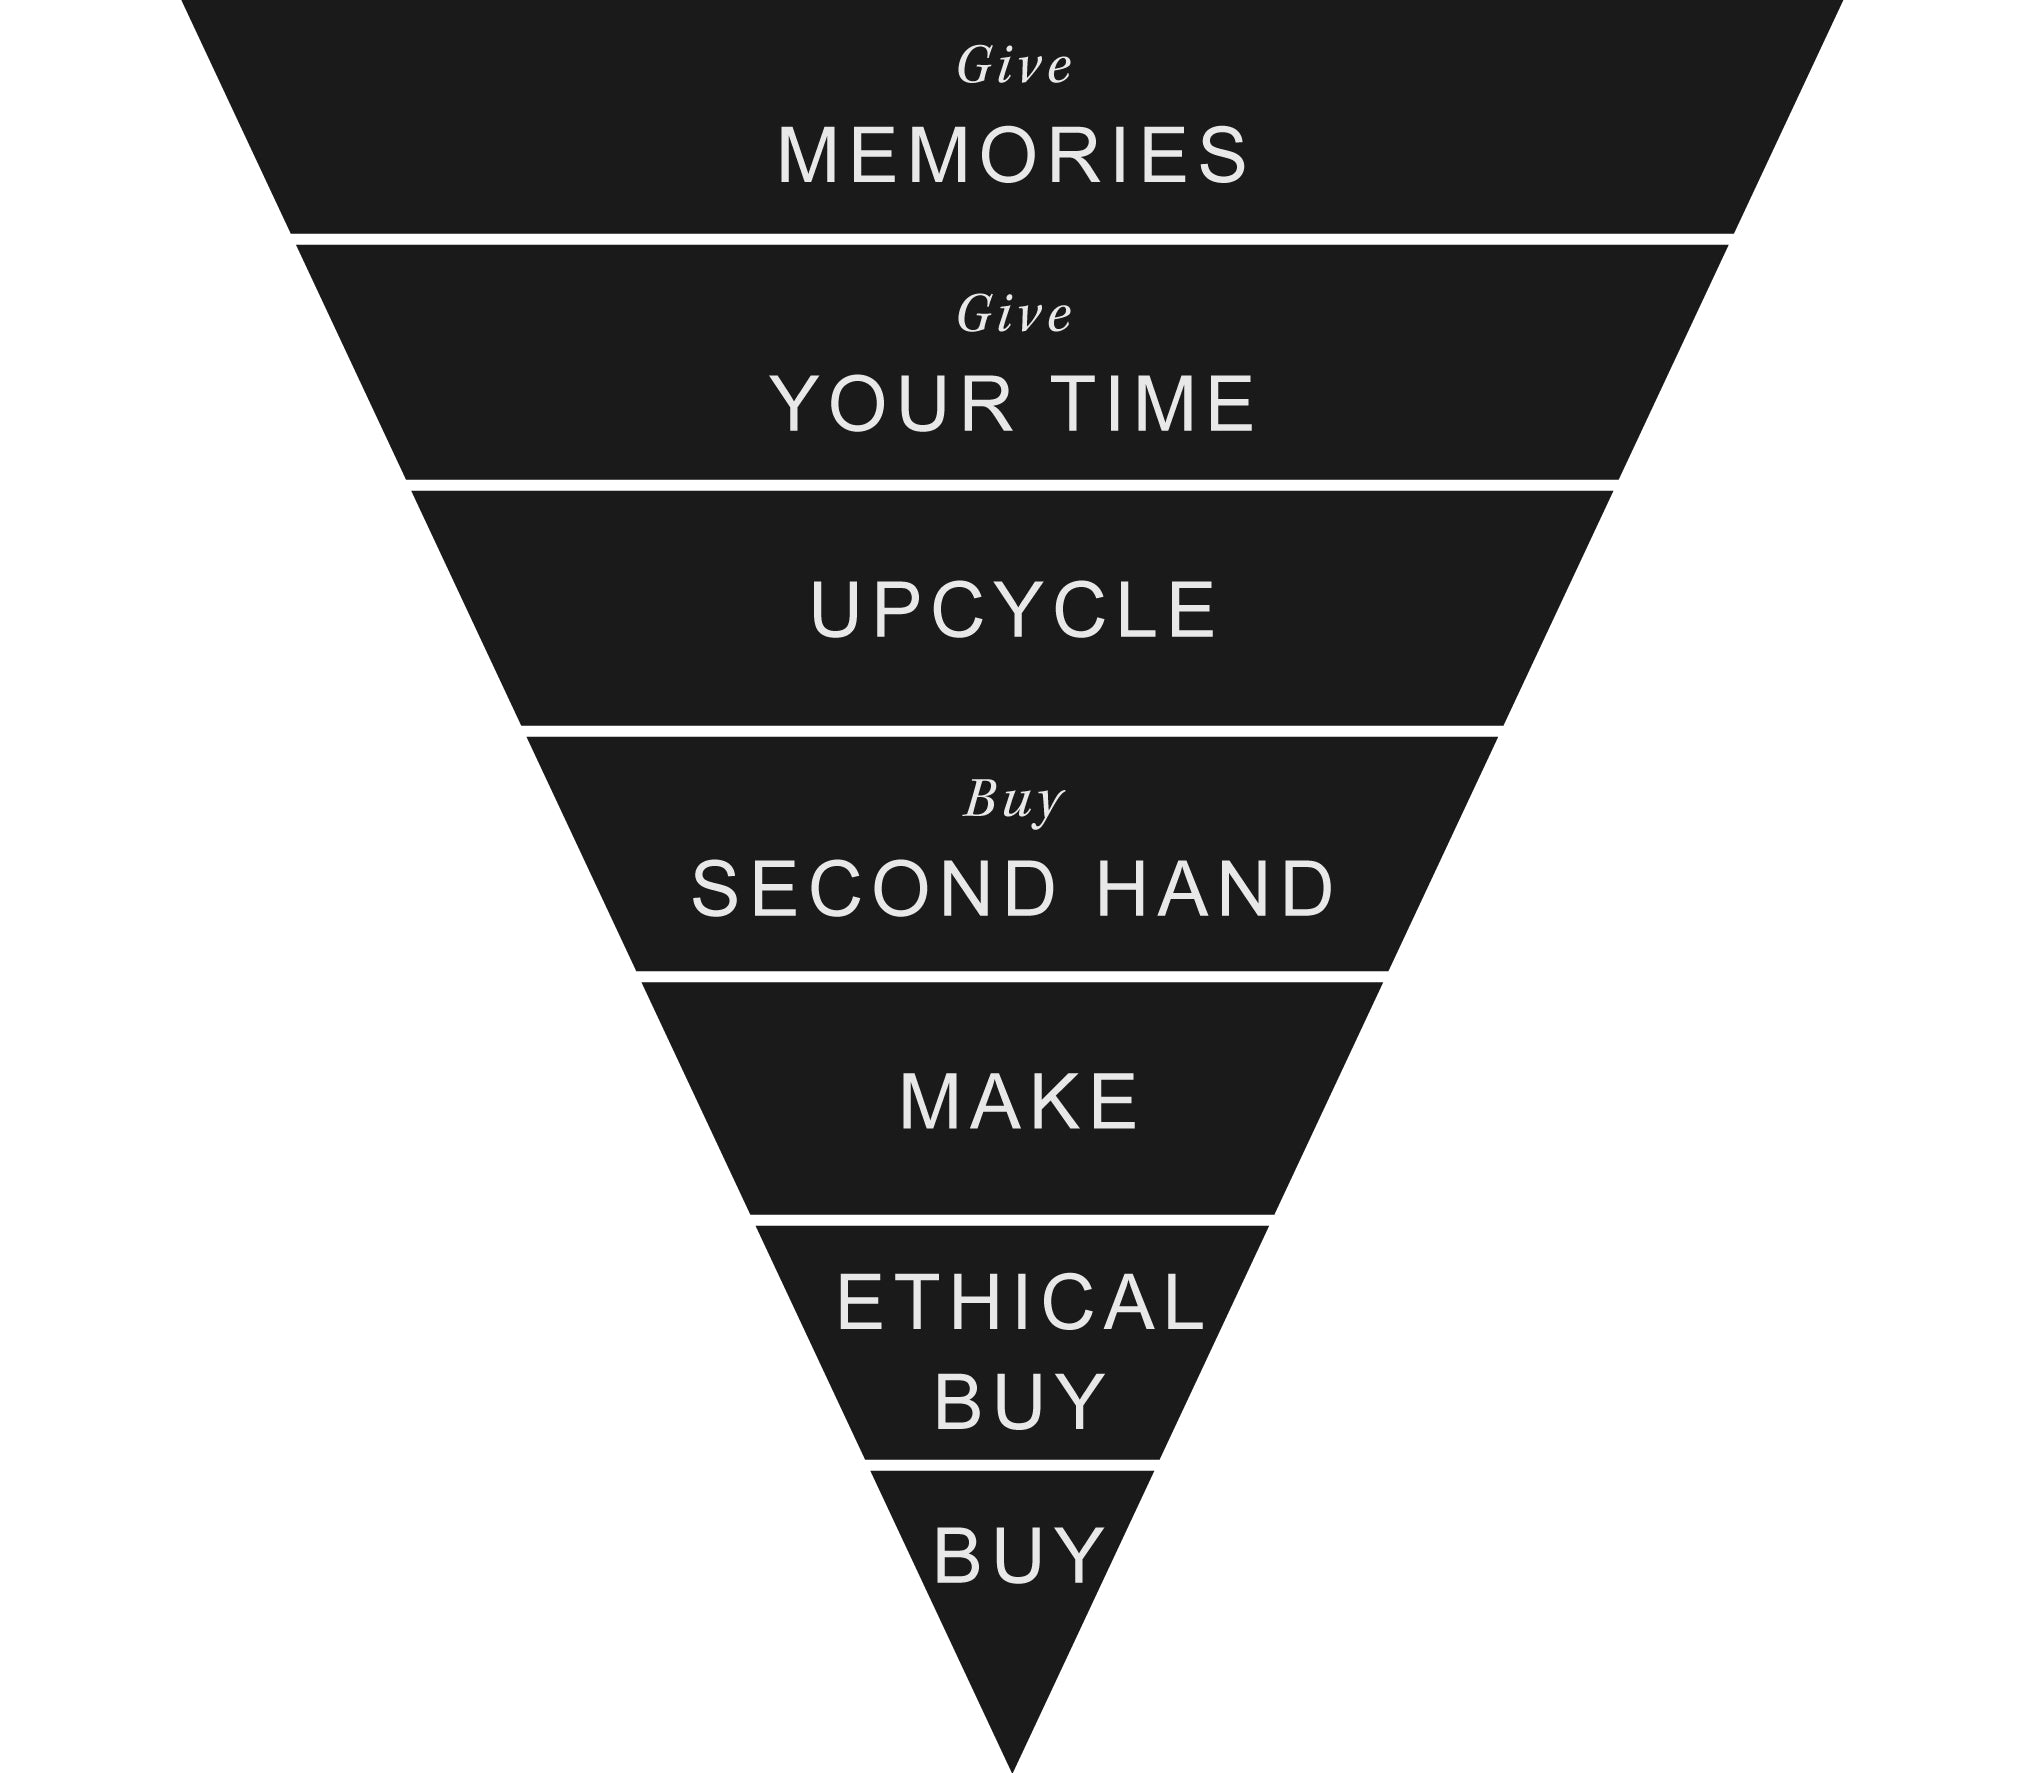 Ethical Hierarchy of Gift Giving